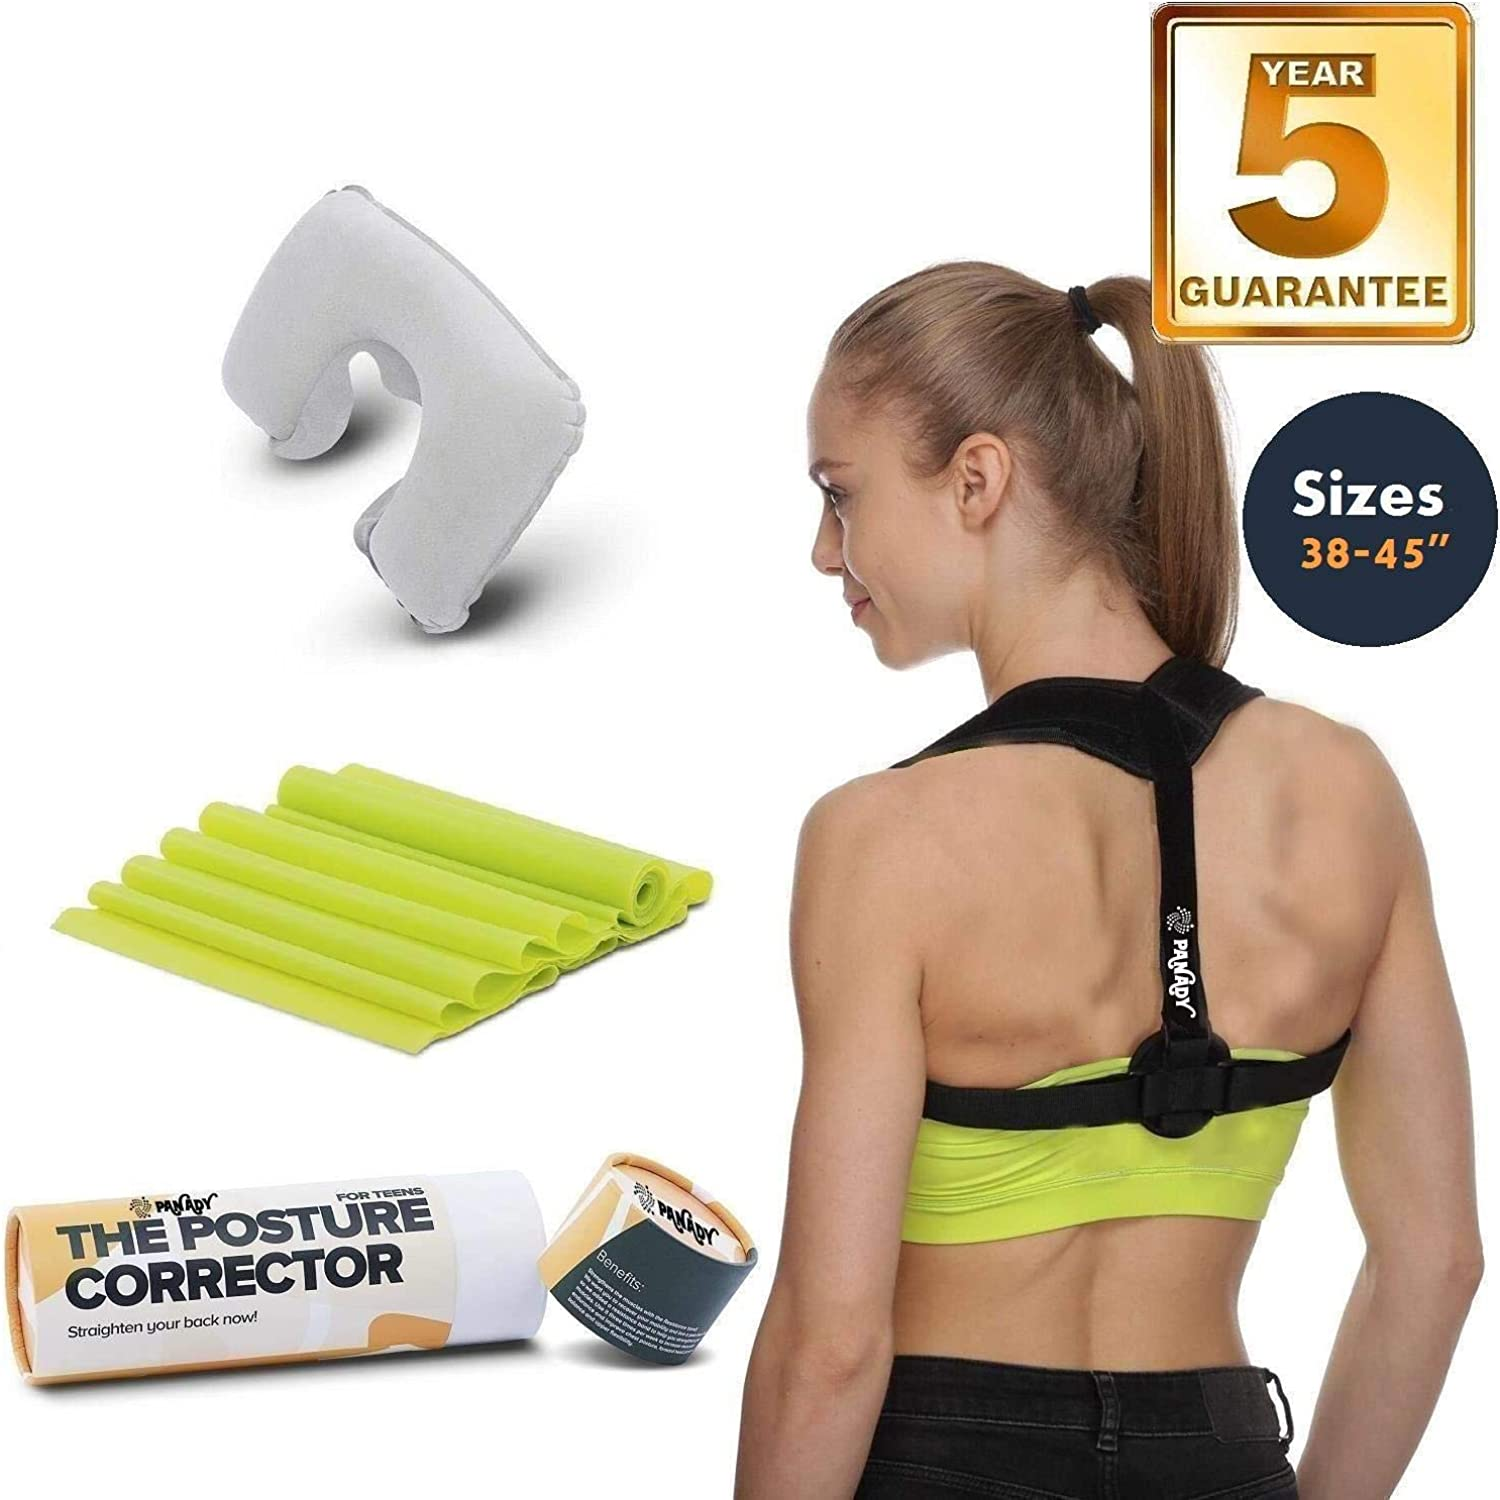 Posture Corrector Back Brace with Adjustable Straightener for Teens Men & Women Posture Corrector Comfortable Orthopedic Clavicle Support Sizes  35-48  and 25-36  Comfortable with 5 Years Warranty